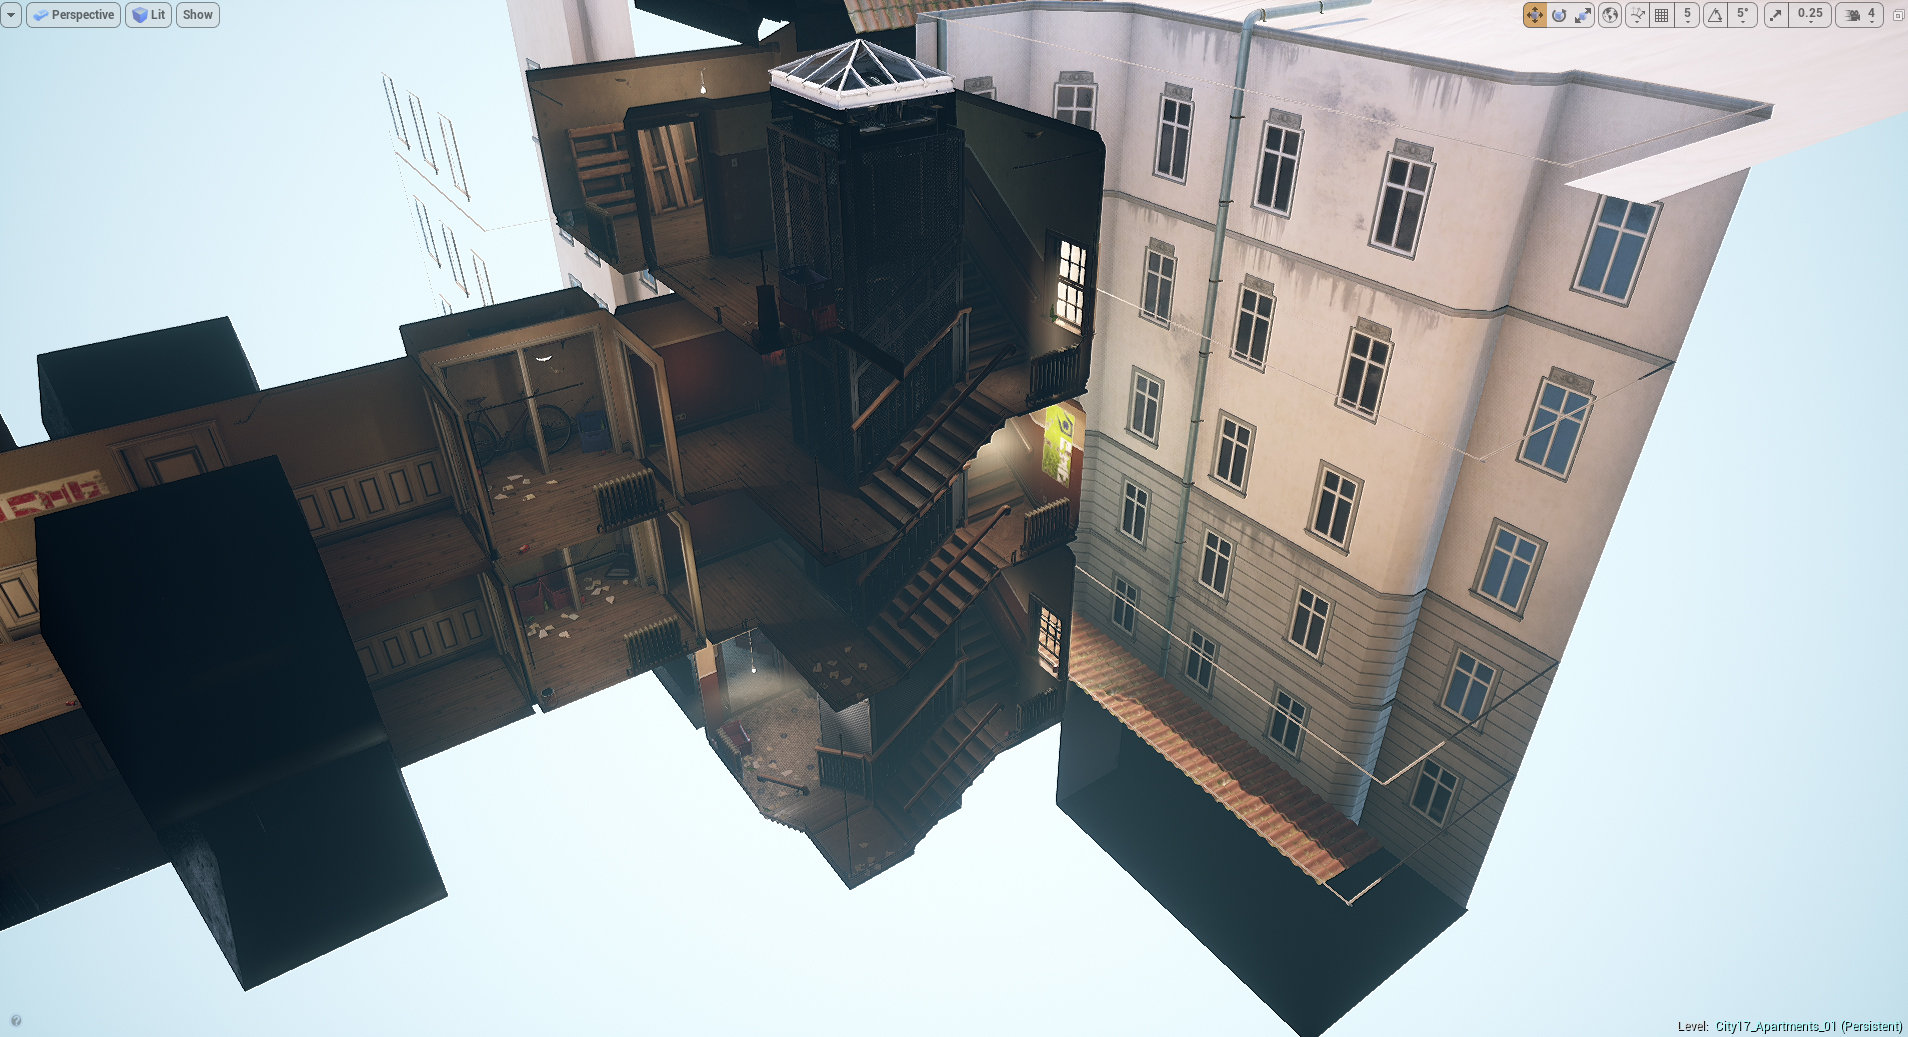 Half-Life 2 City 17 Area Re-created in Unreal Engine 4 with